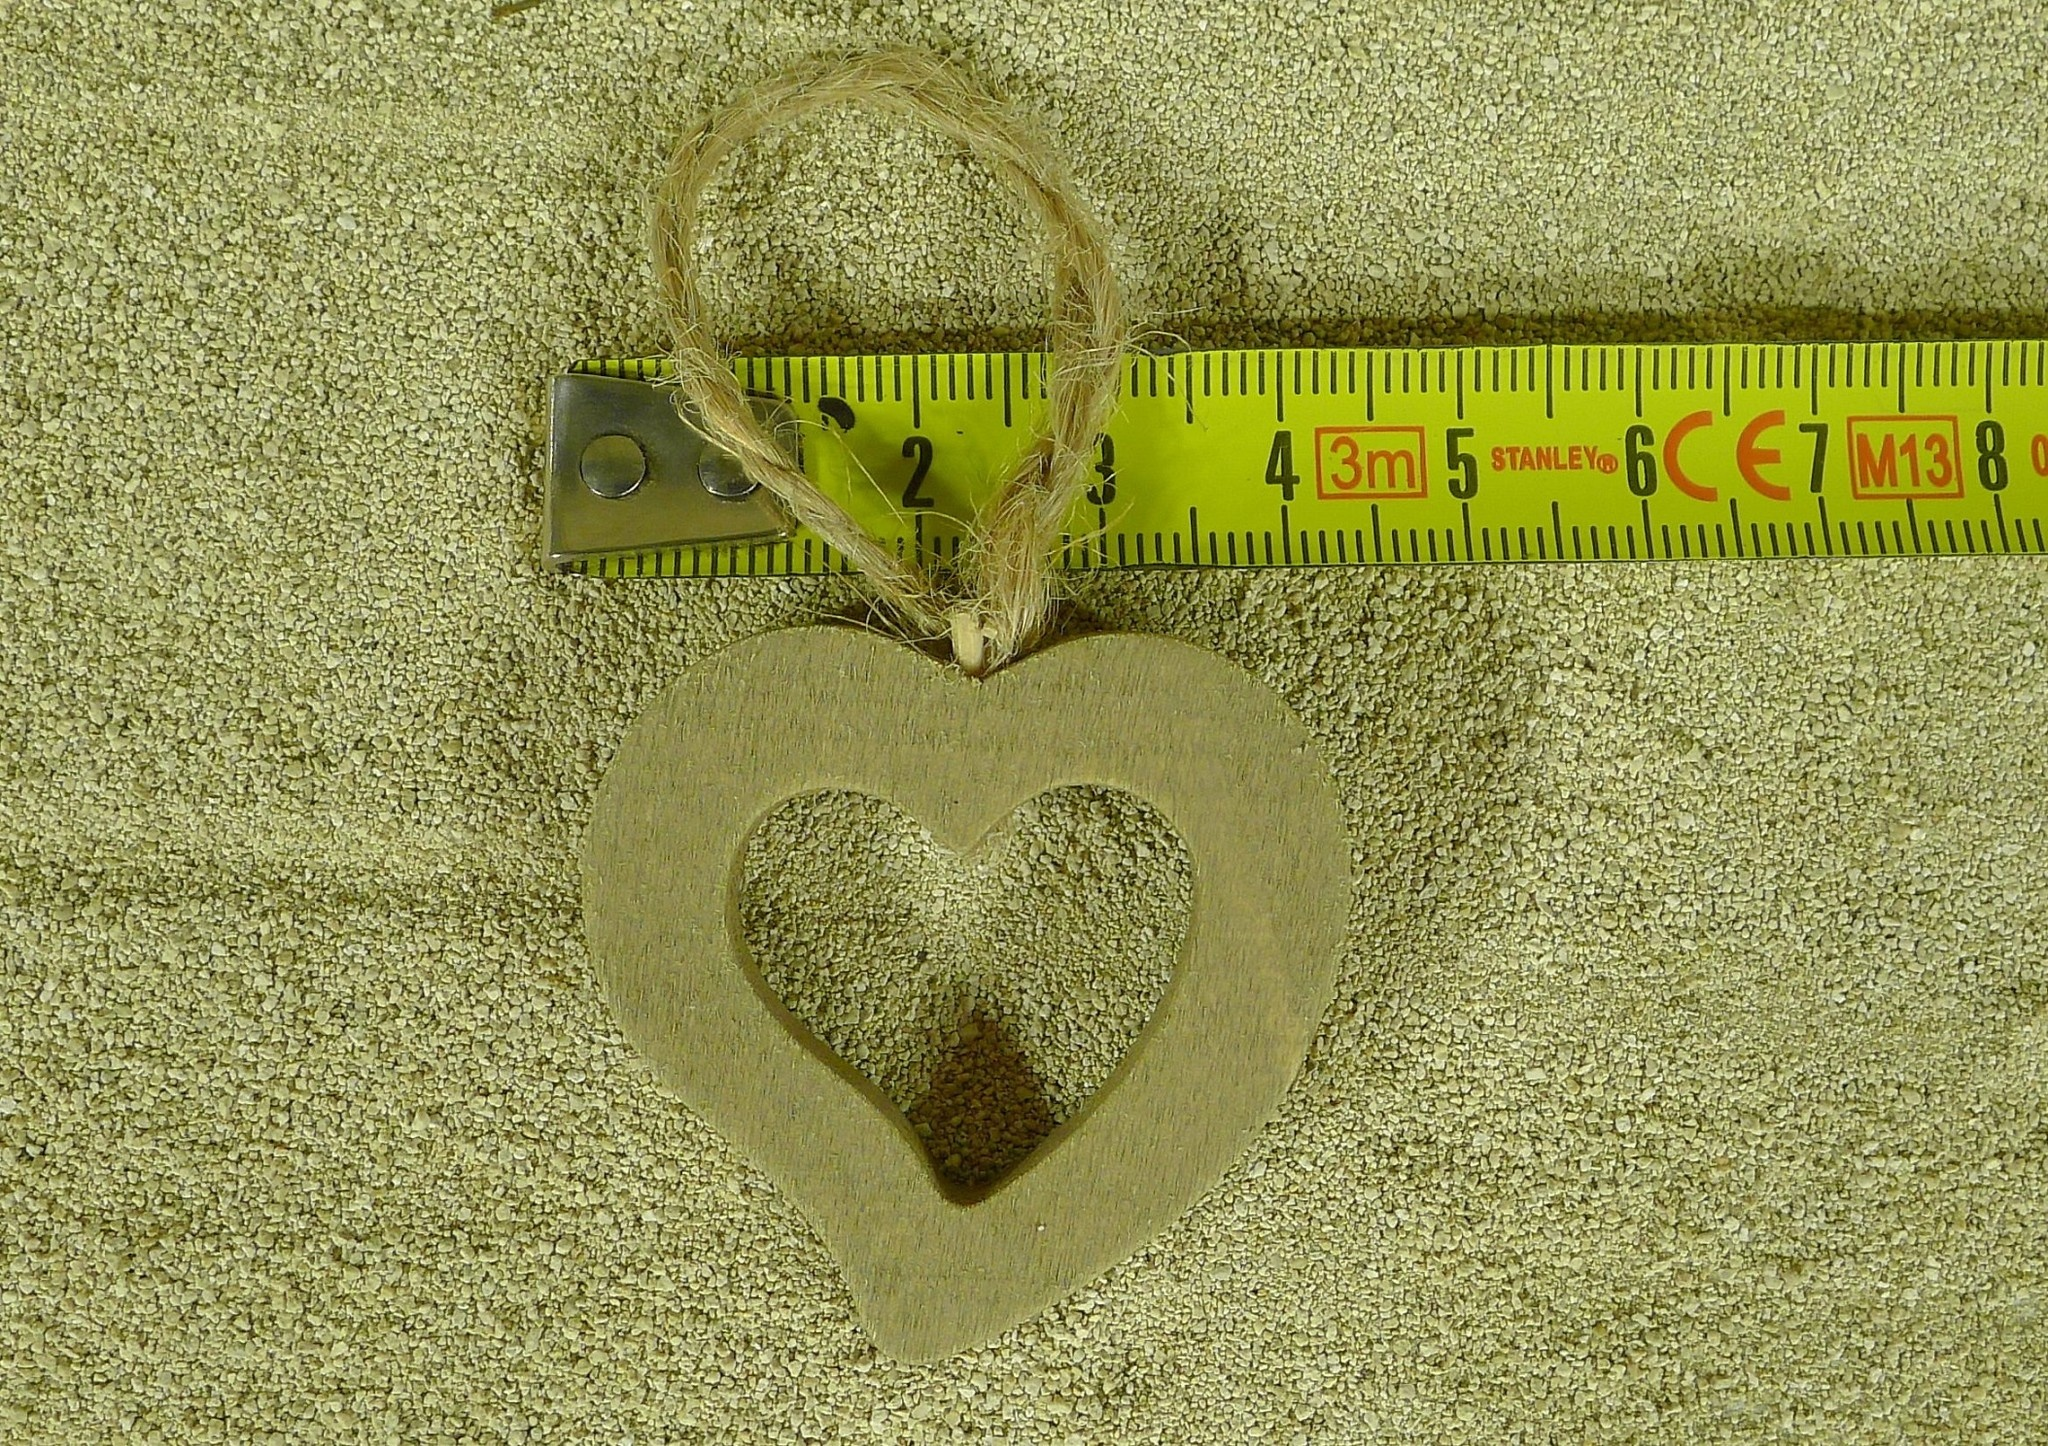 flor dec	wood	heart grey 4-7